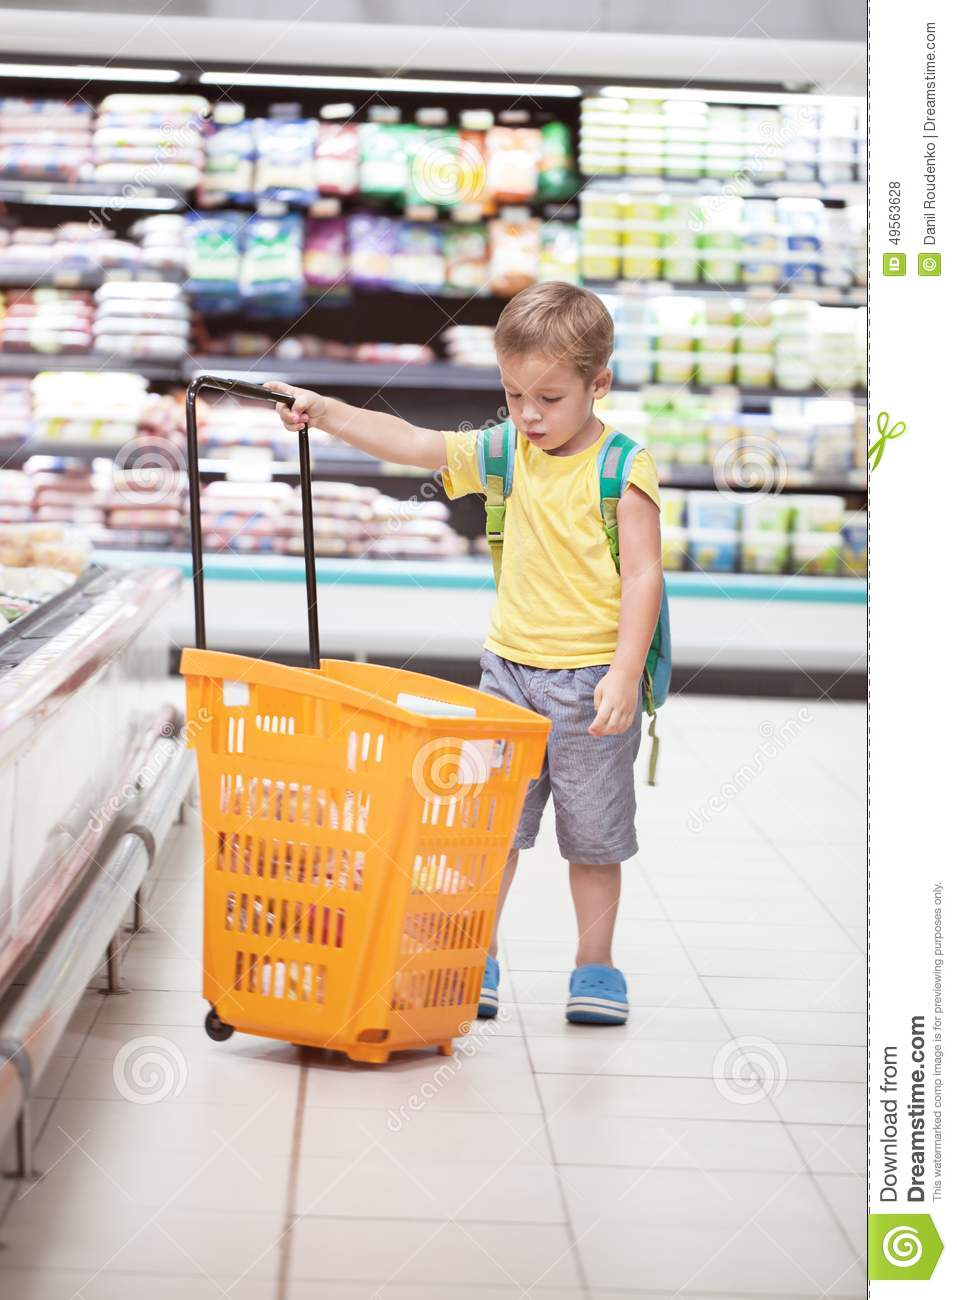 Lonely Boutique In Newmarket Auckland By Rufus Knight: Little Boy With Big Shopping Cart In The Store Stock Photo